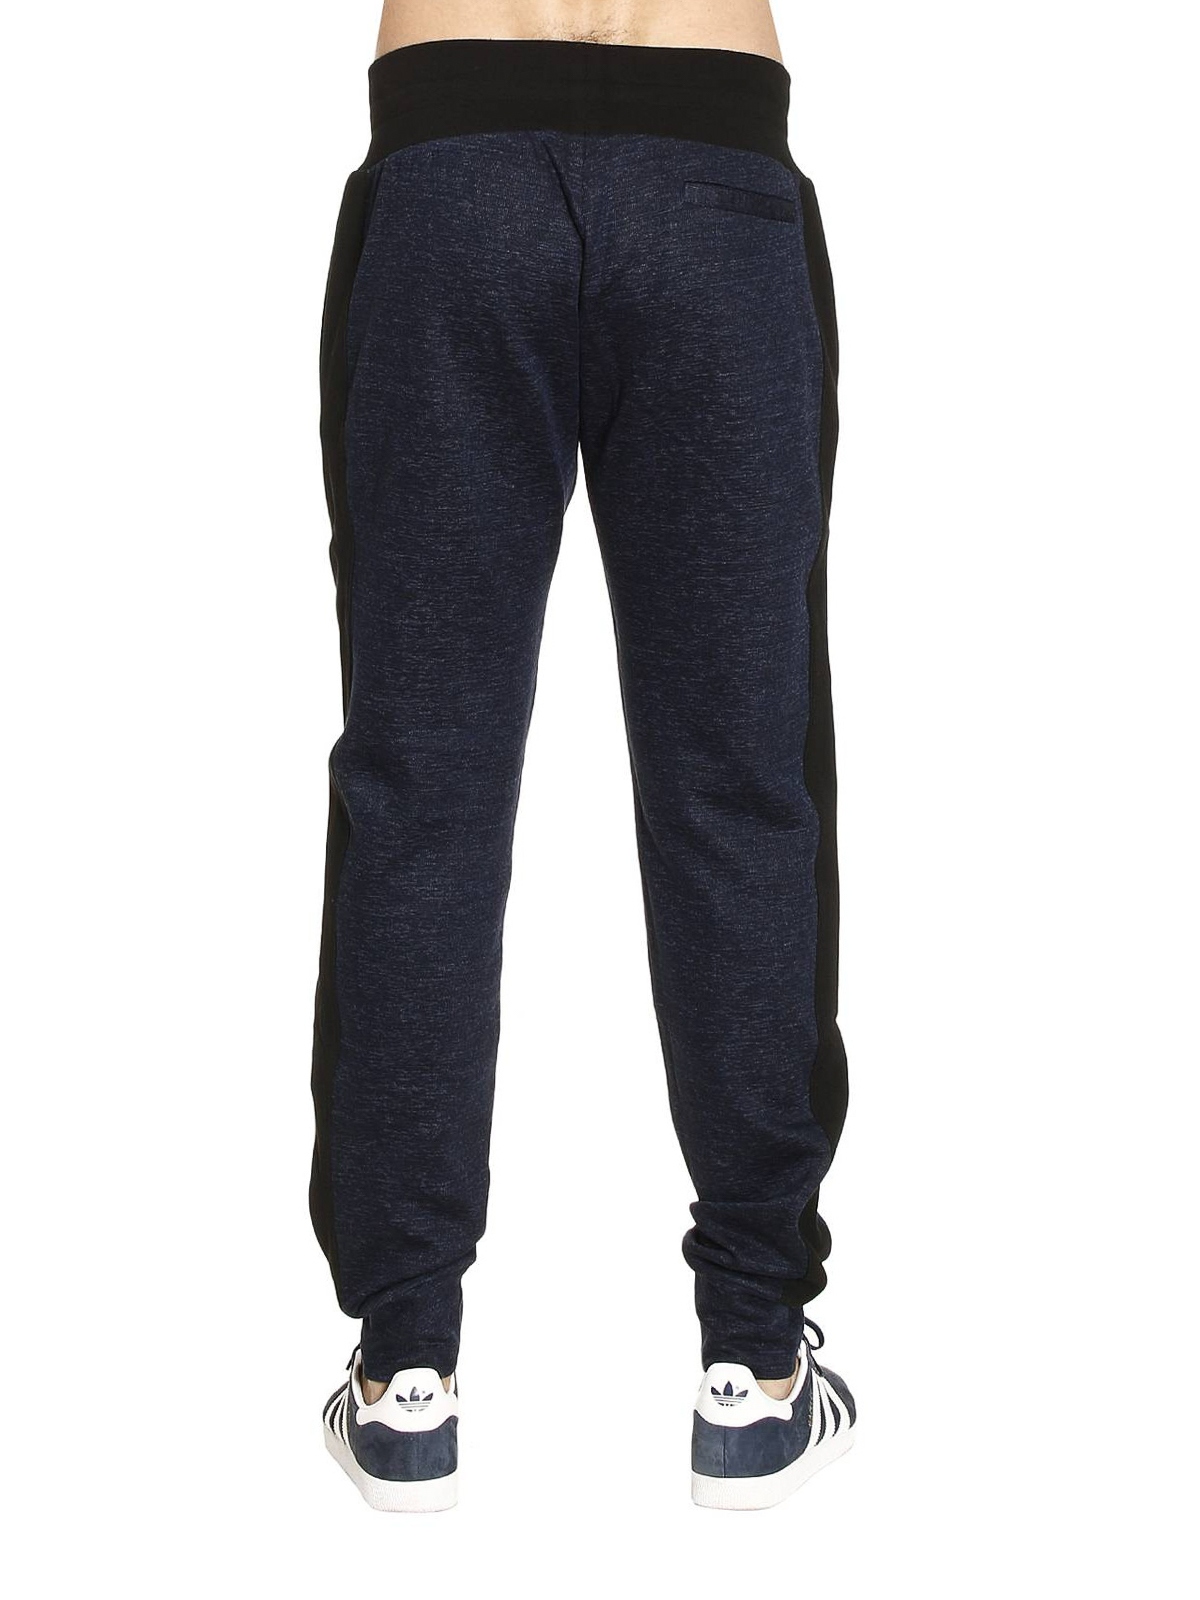 813c3d07 Versace - Cotton and linen blend trousers - tracksuit bottoms ...